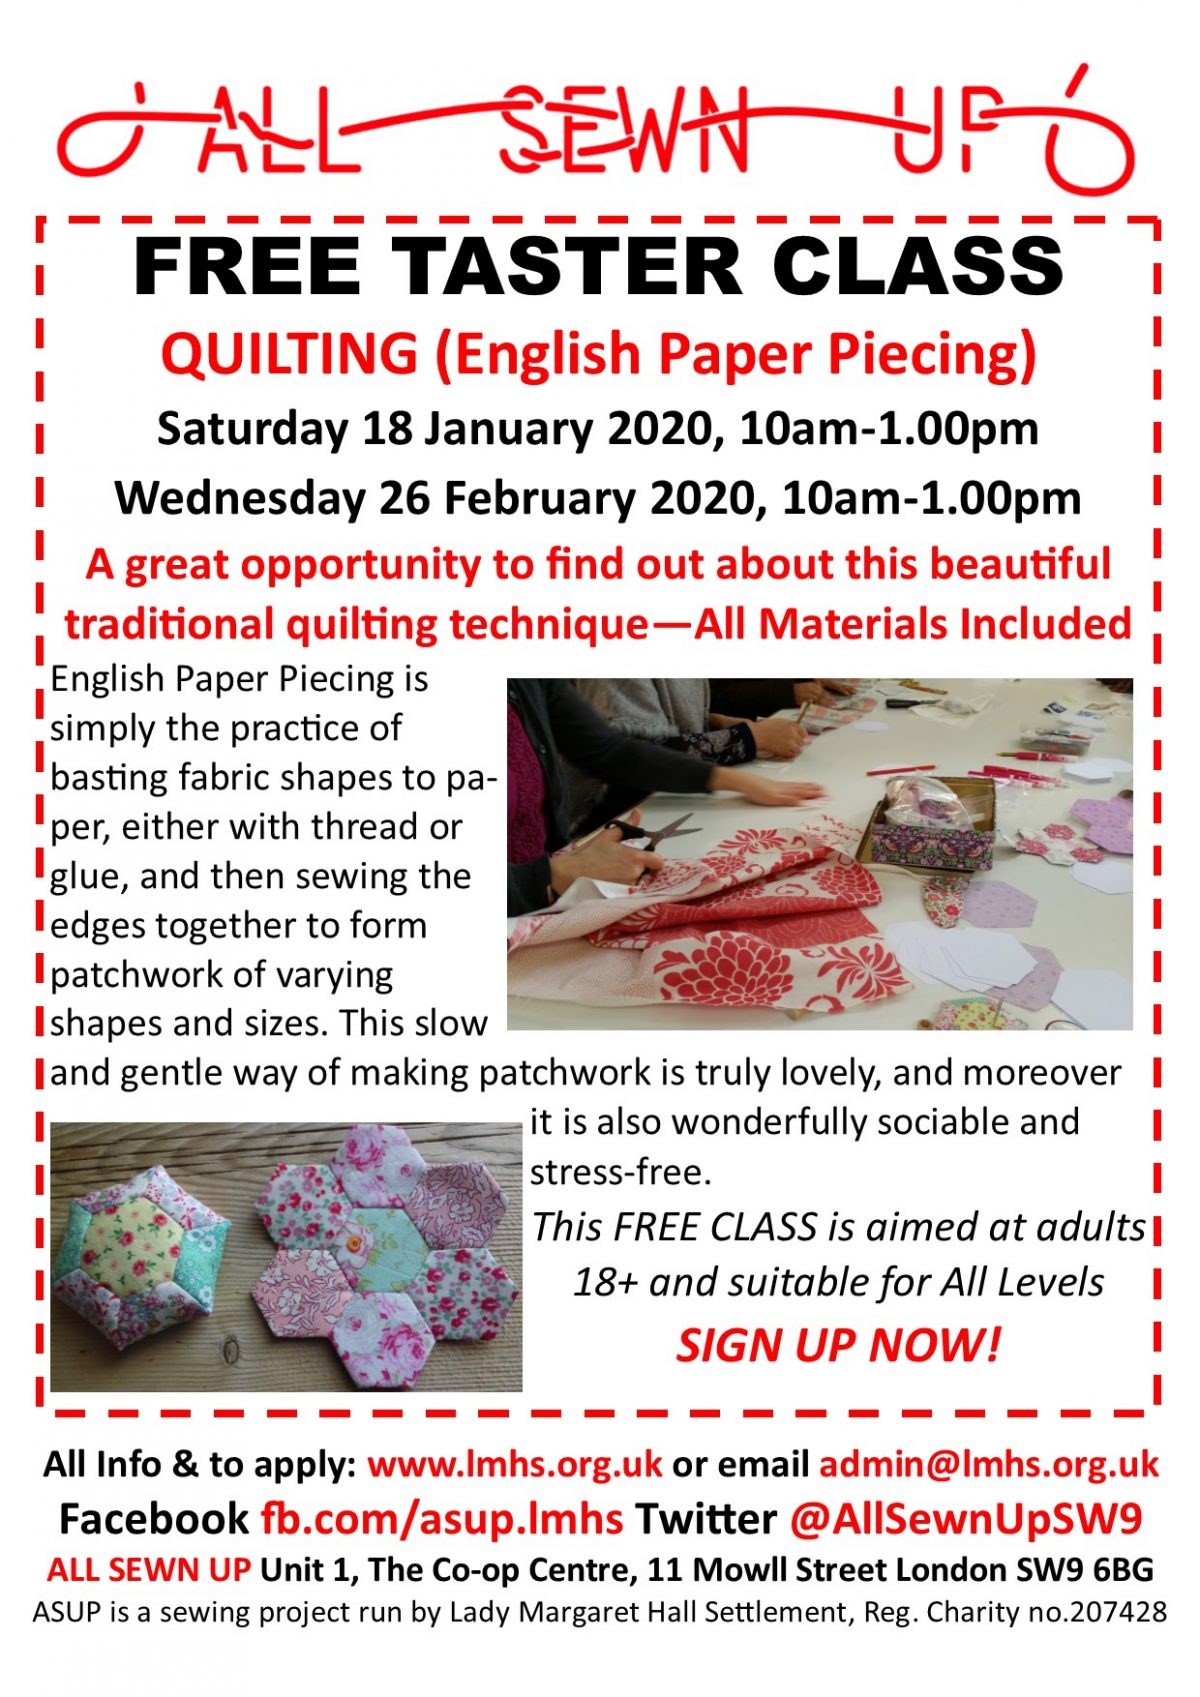 FREE QUILTING TASTER CLASS Saturday 18 Jan 2020